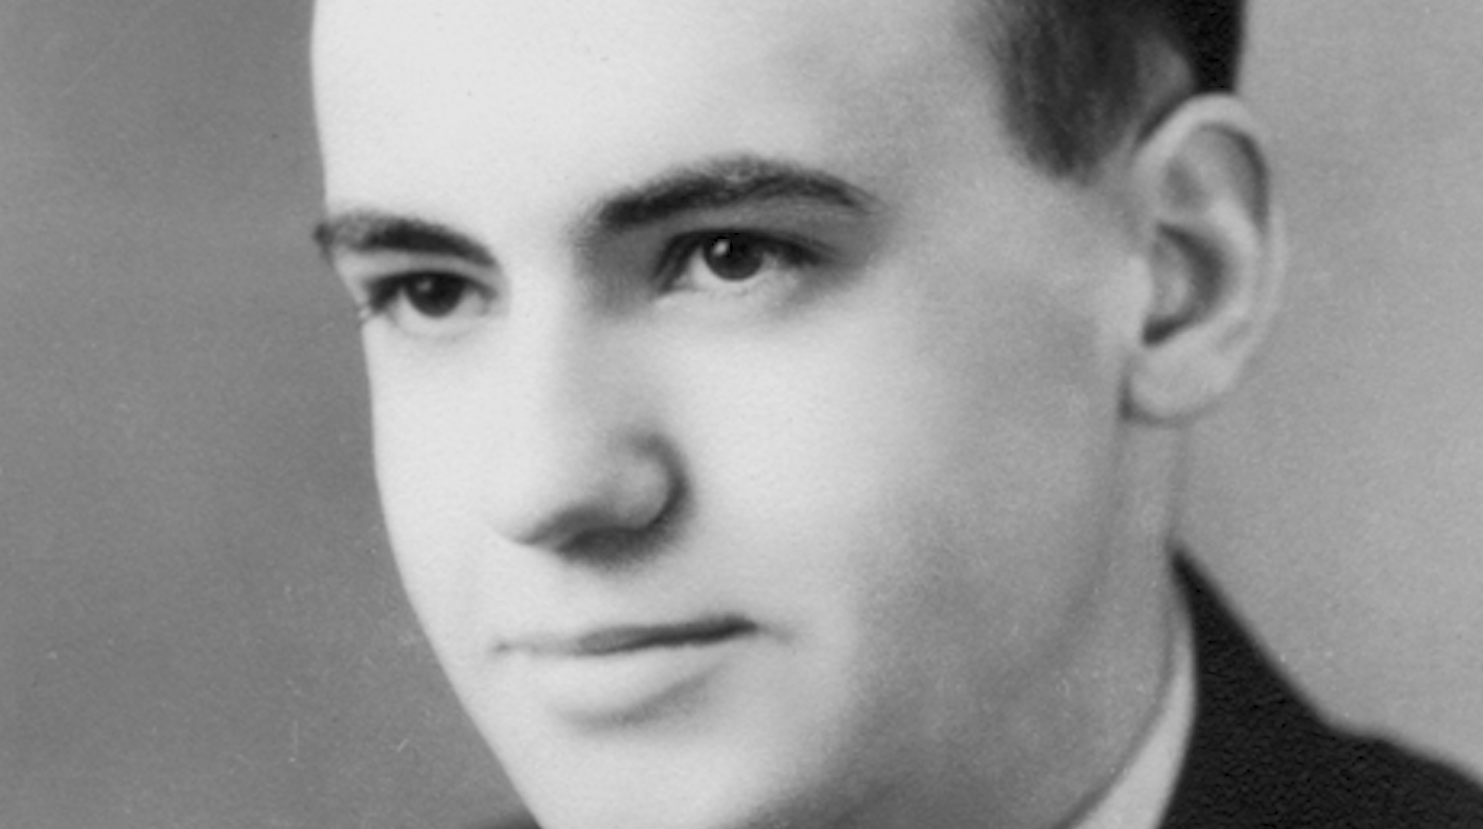 Dr. Hilleman as young man